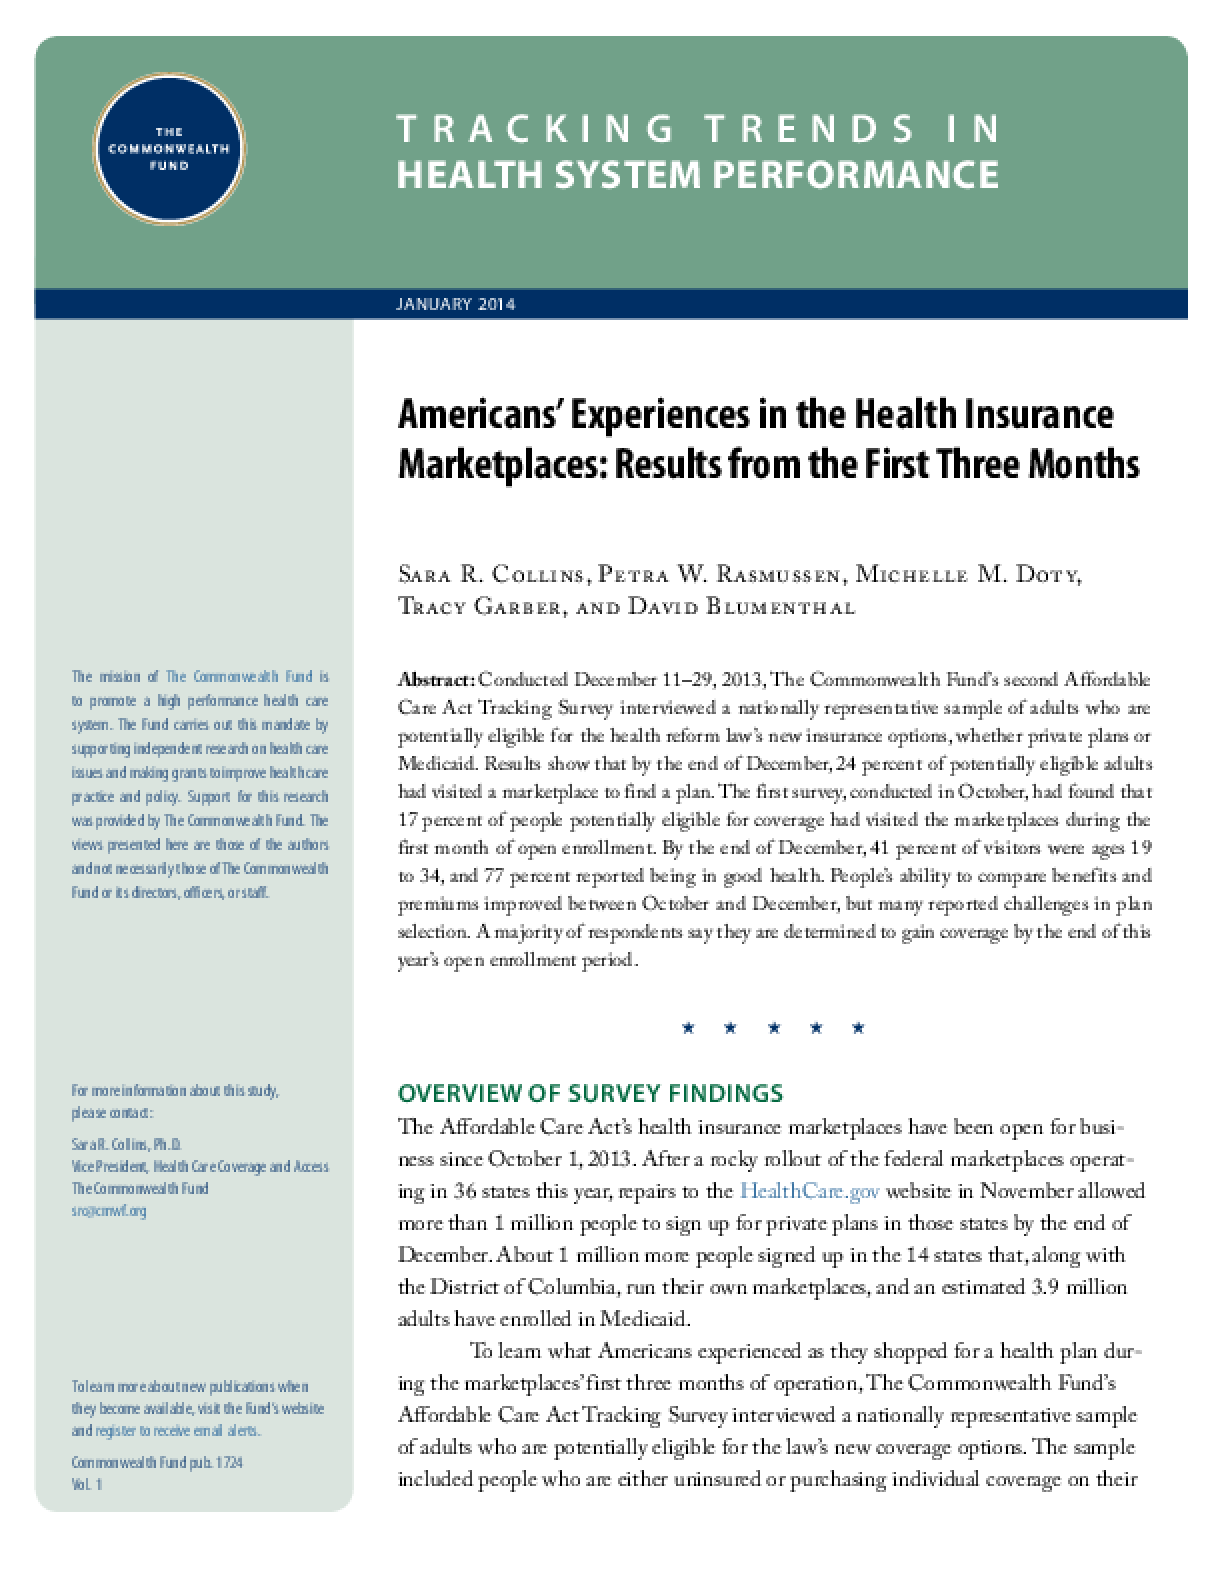 Americans' Experiences in the Health Insurance Marketplaces: Results from The First Three Months